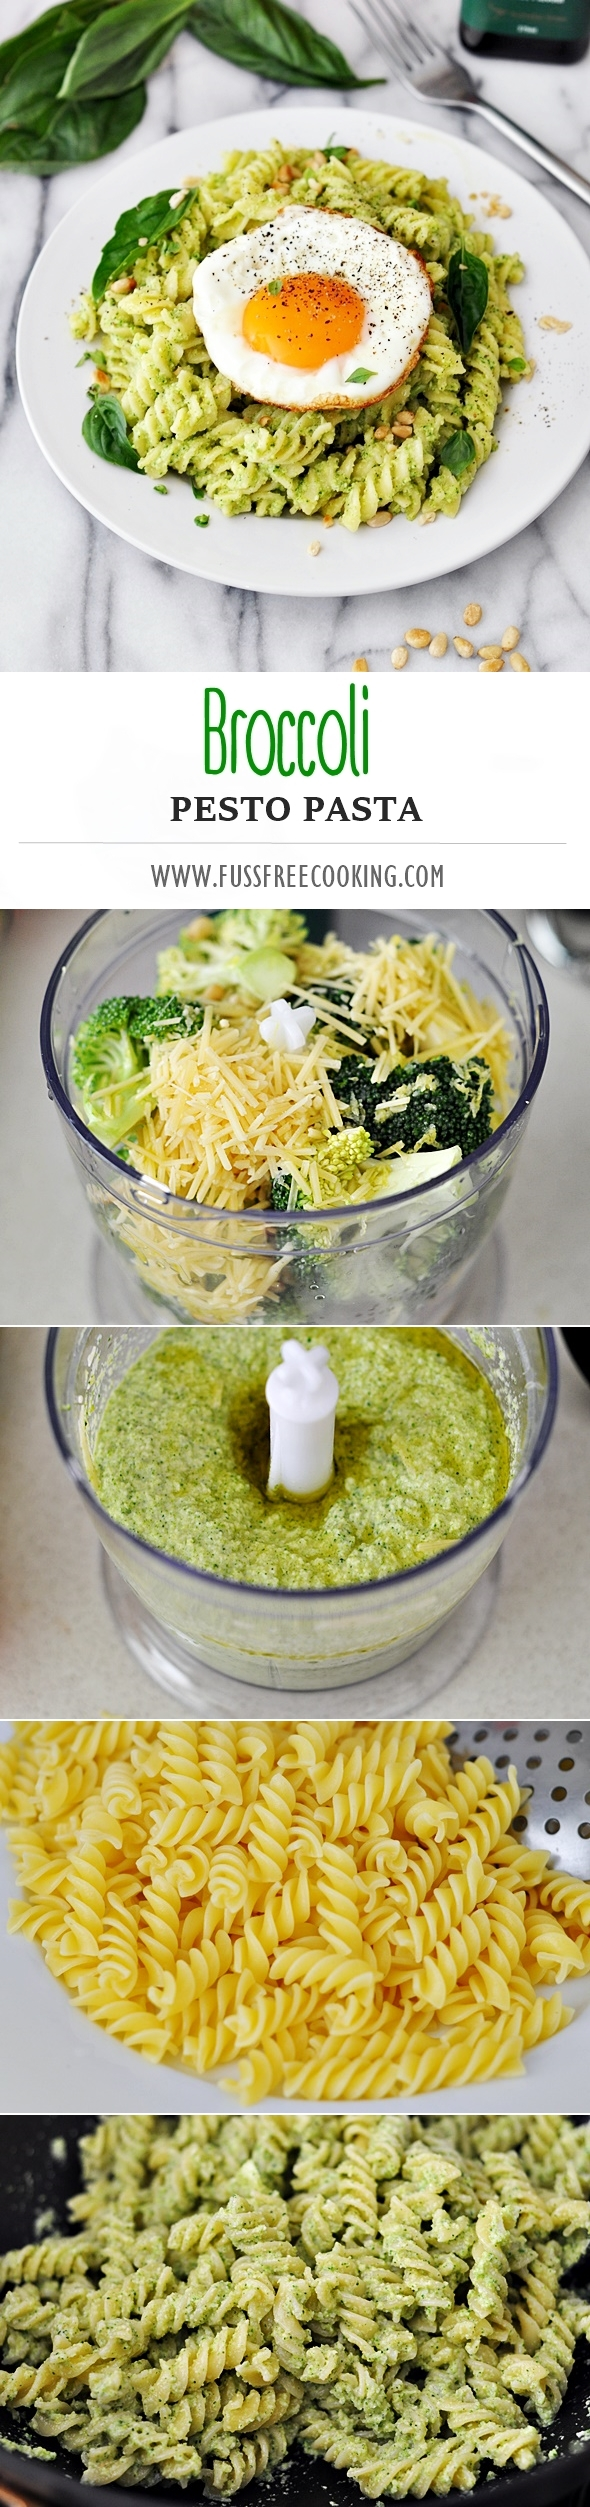 Broccoli Pesto Pasta Recipe | www.fussfreecooking.com